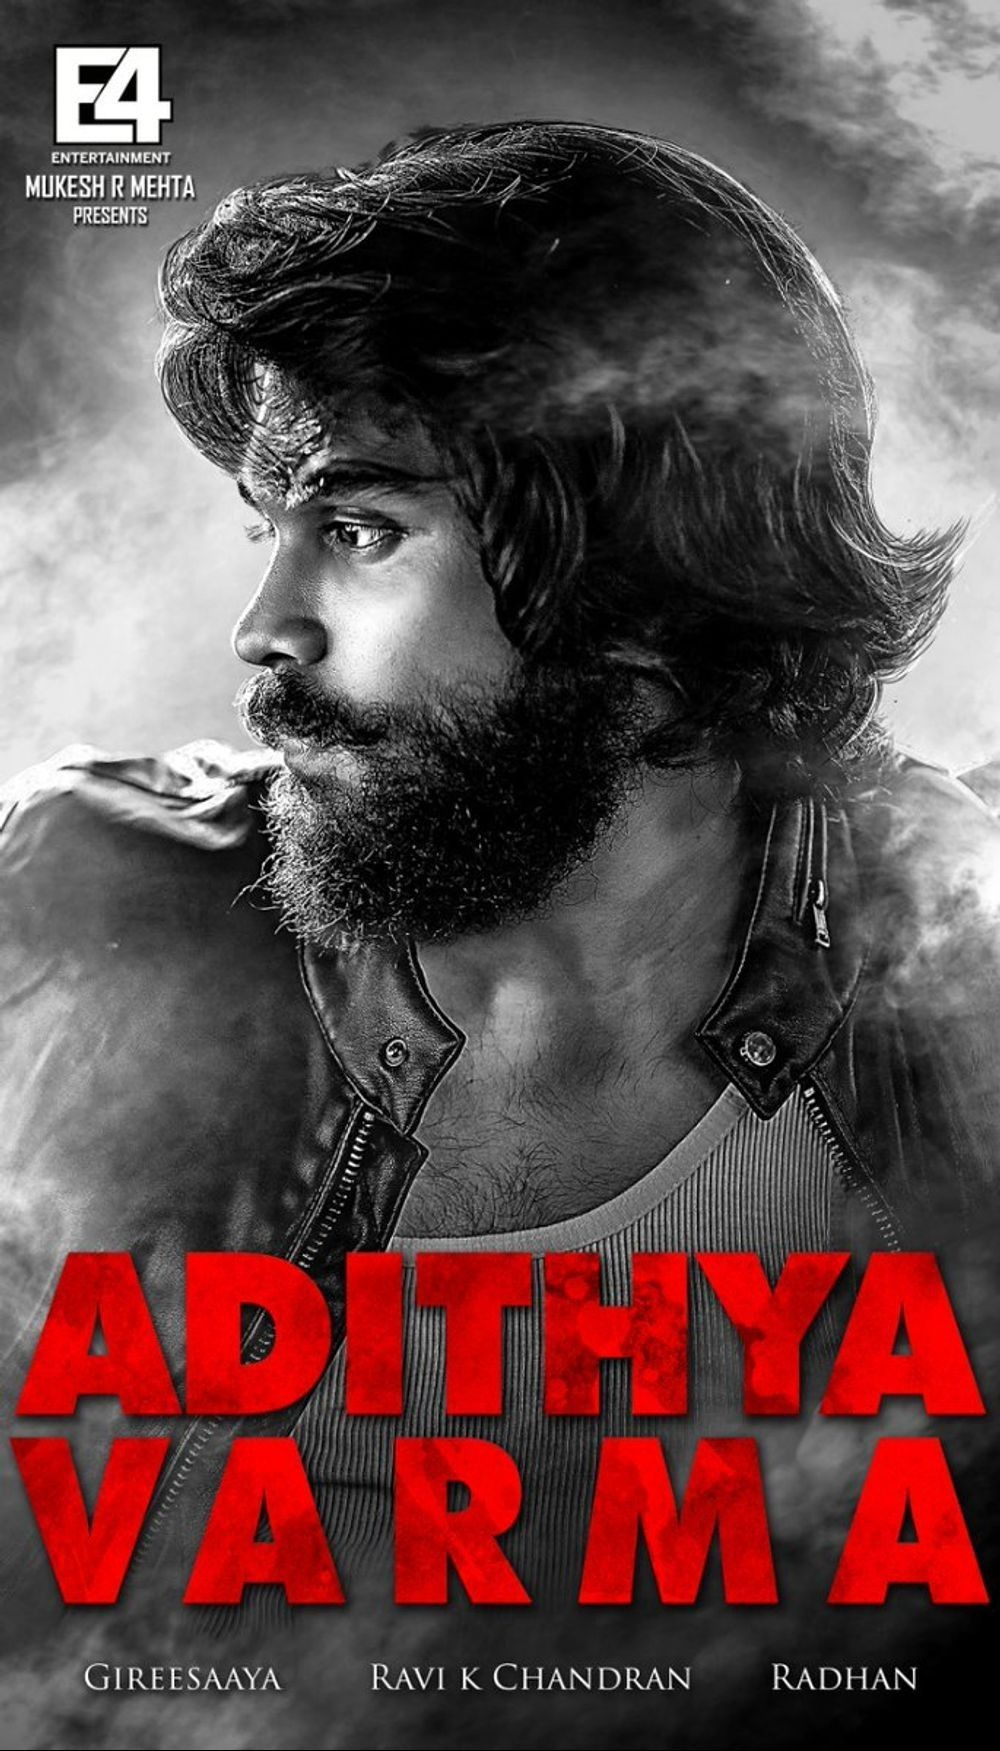 Adithya Varma Movie Latest HD Photos, Posters & Wallpapers Download (1080p, 4K) (74134) - Adithya Varma, Dhruv Vikram